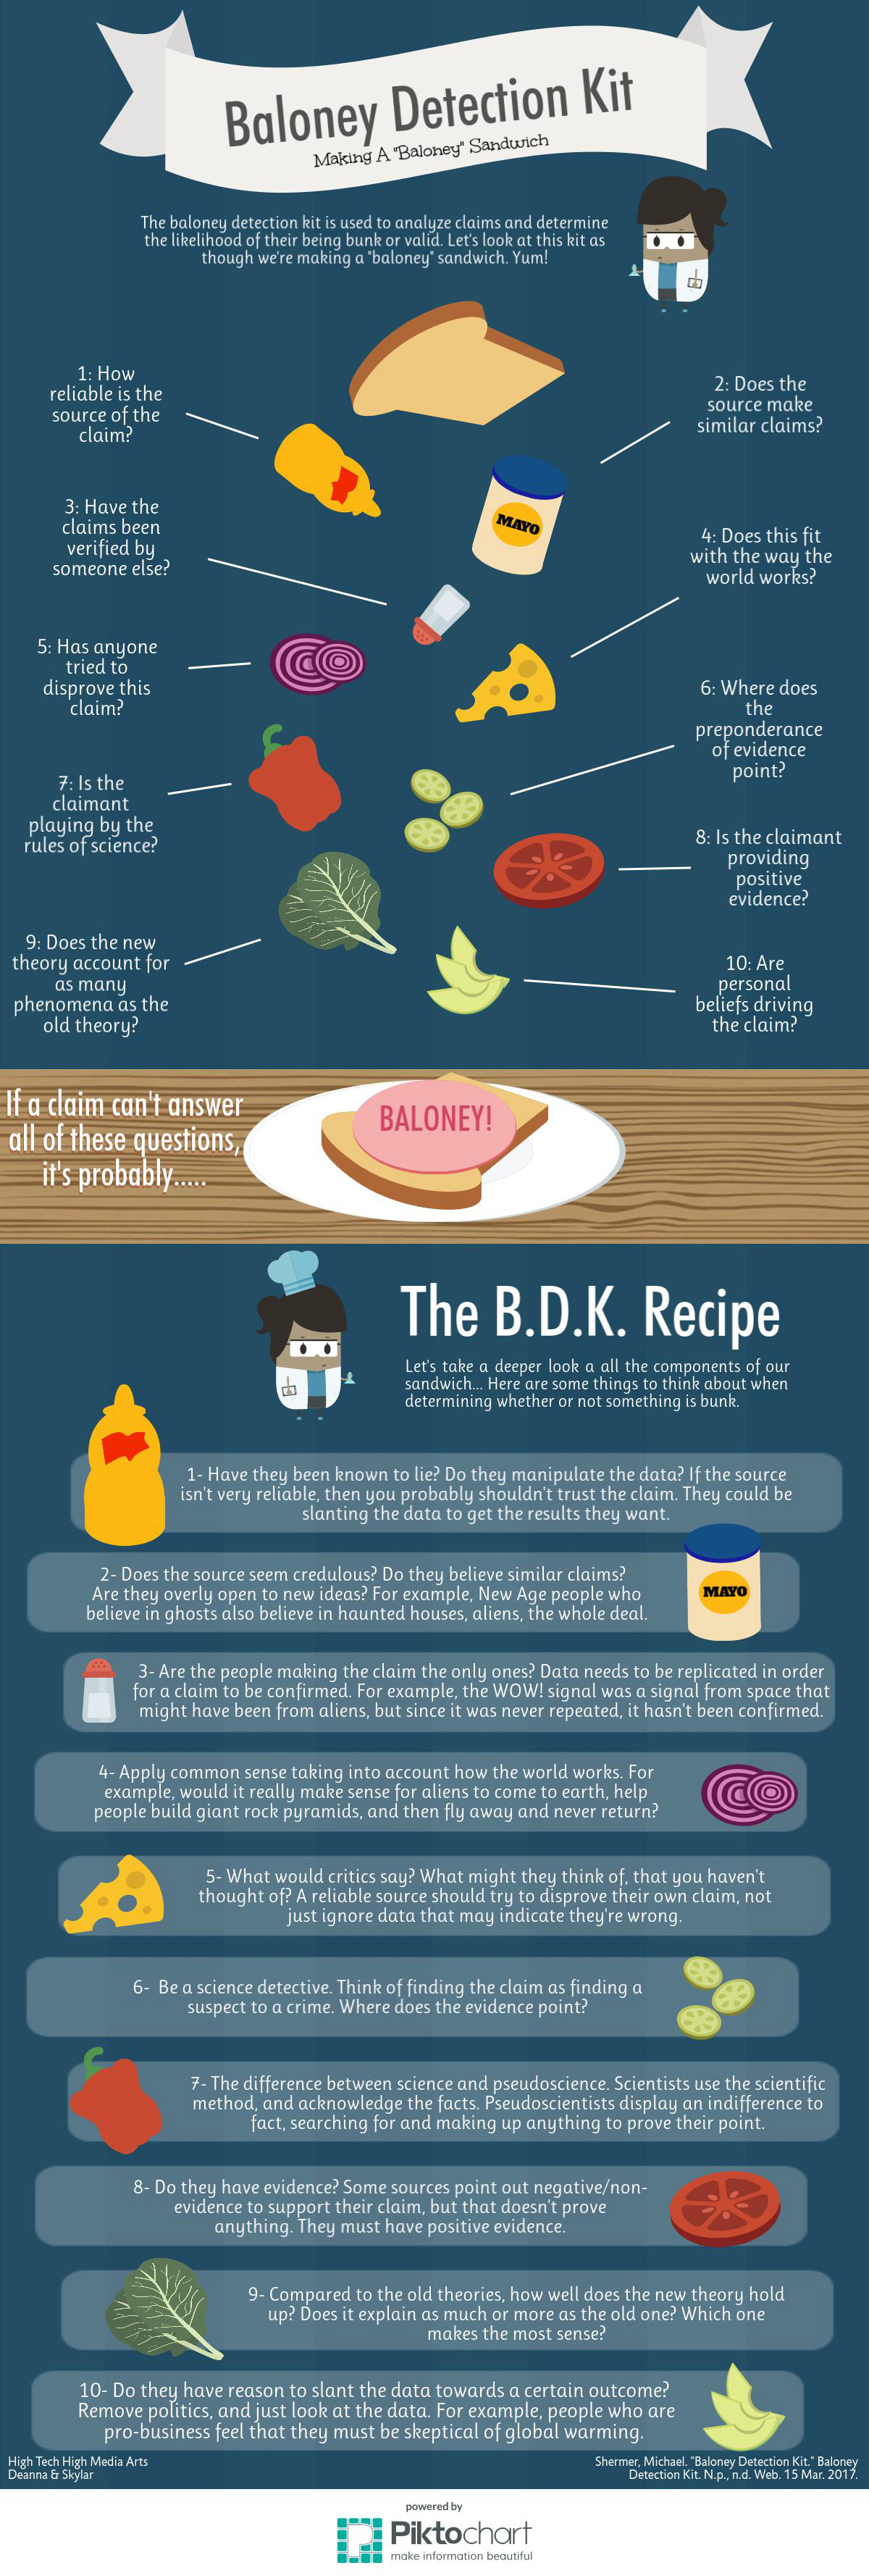 Baloney Detection Kit infographic (detail)